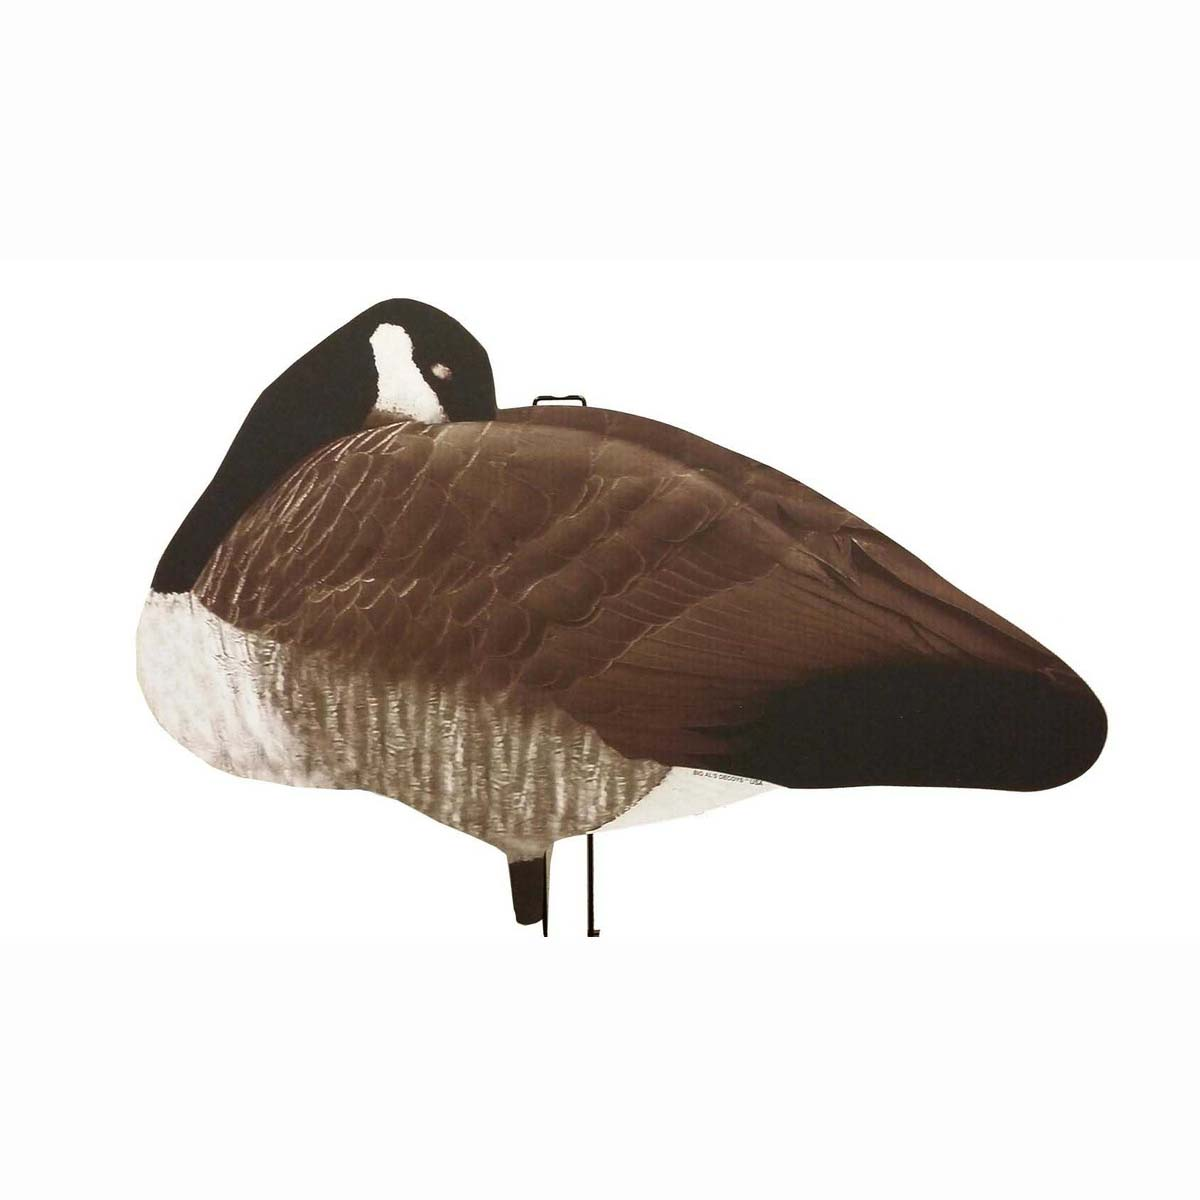 Big Als Decoys Greater Canada Goose Sleeper Silhouettes, 12 Pack